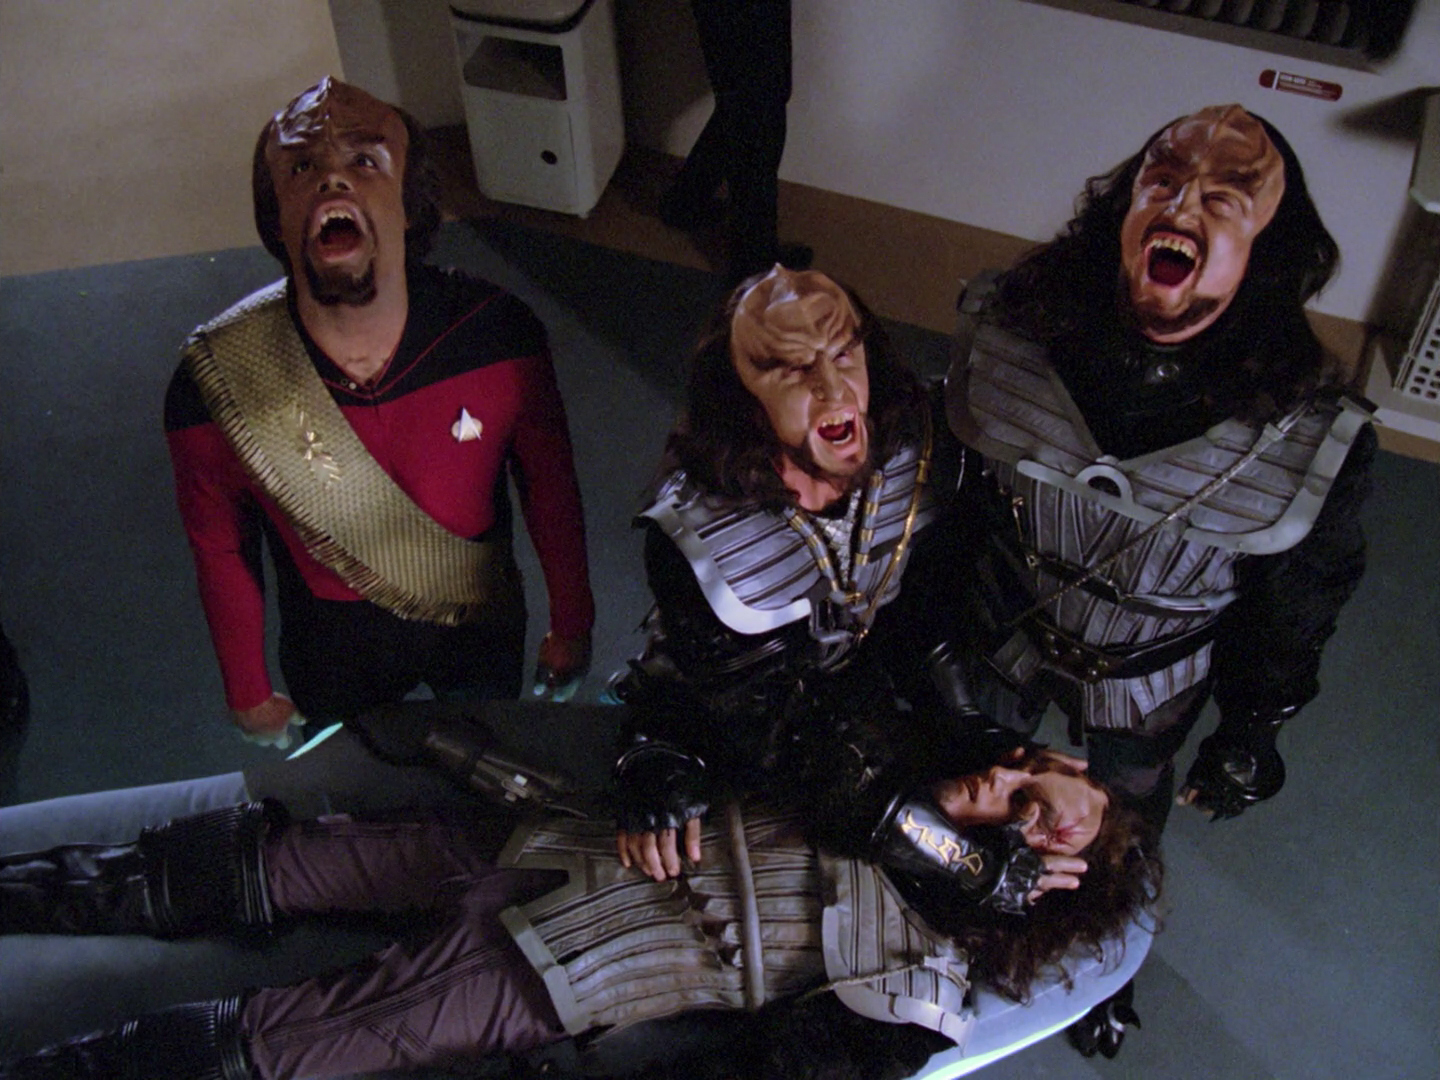 Lt. Commander Worf and other Klingons perform the Klingon death ritual in Star Trek: The Next Generation.